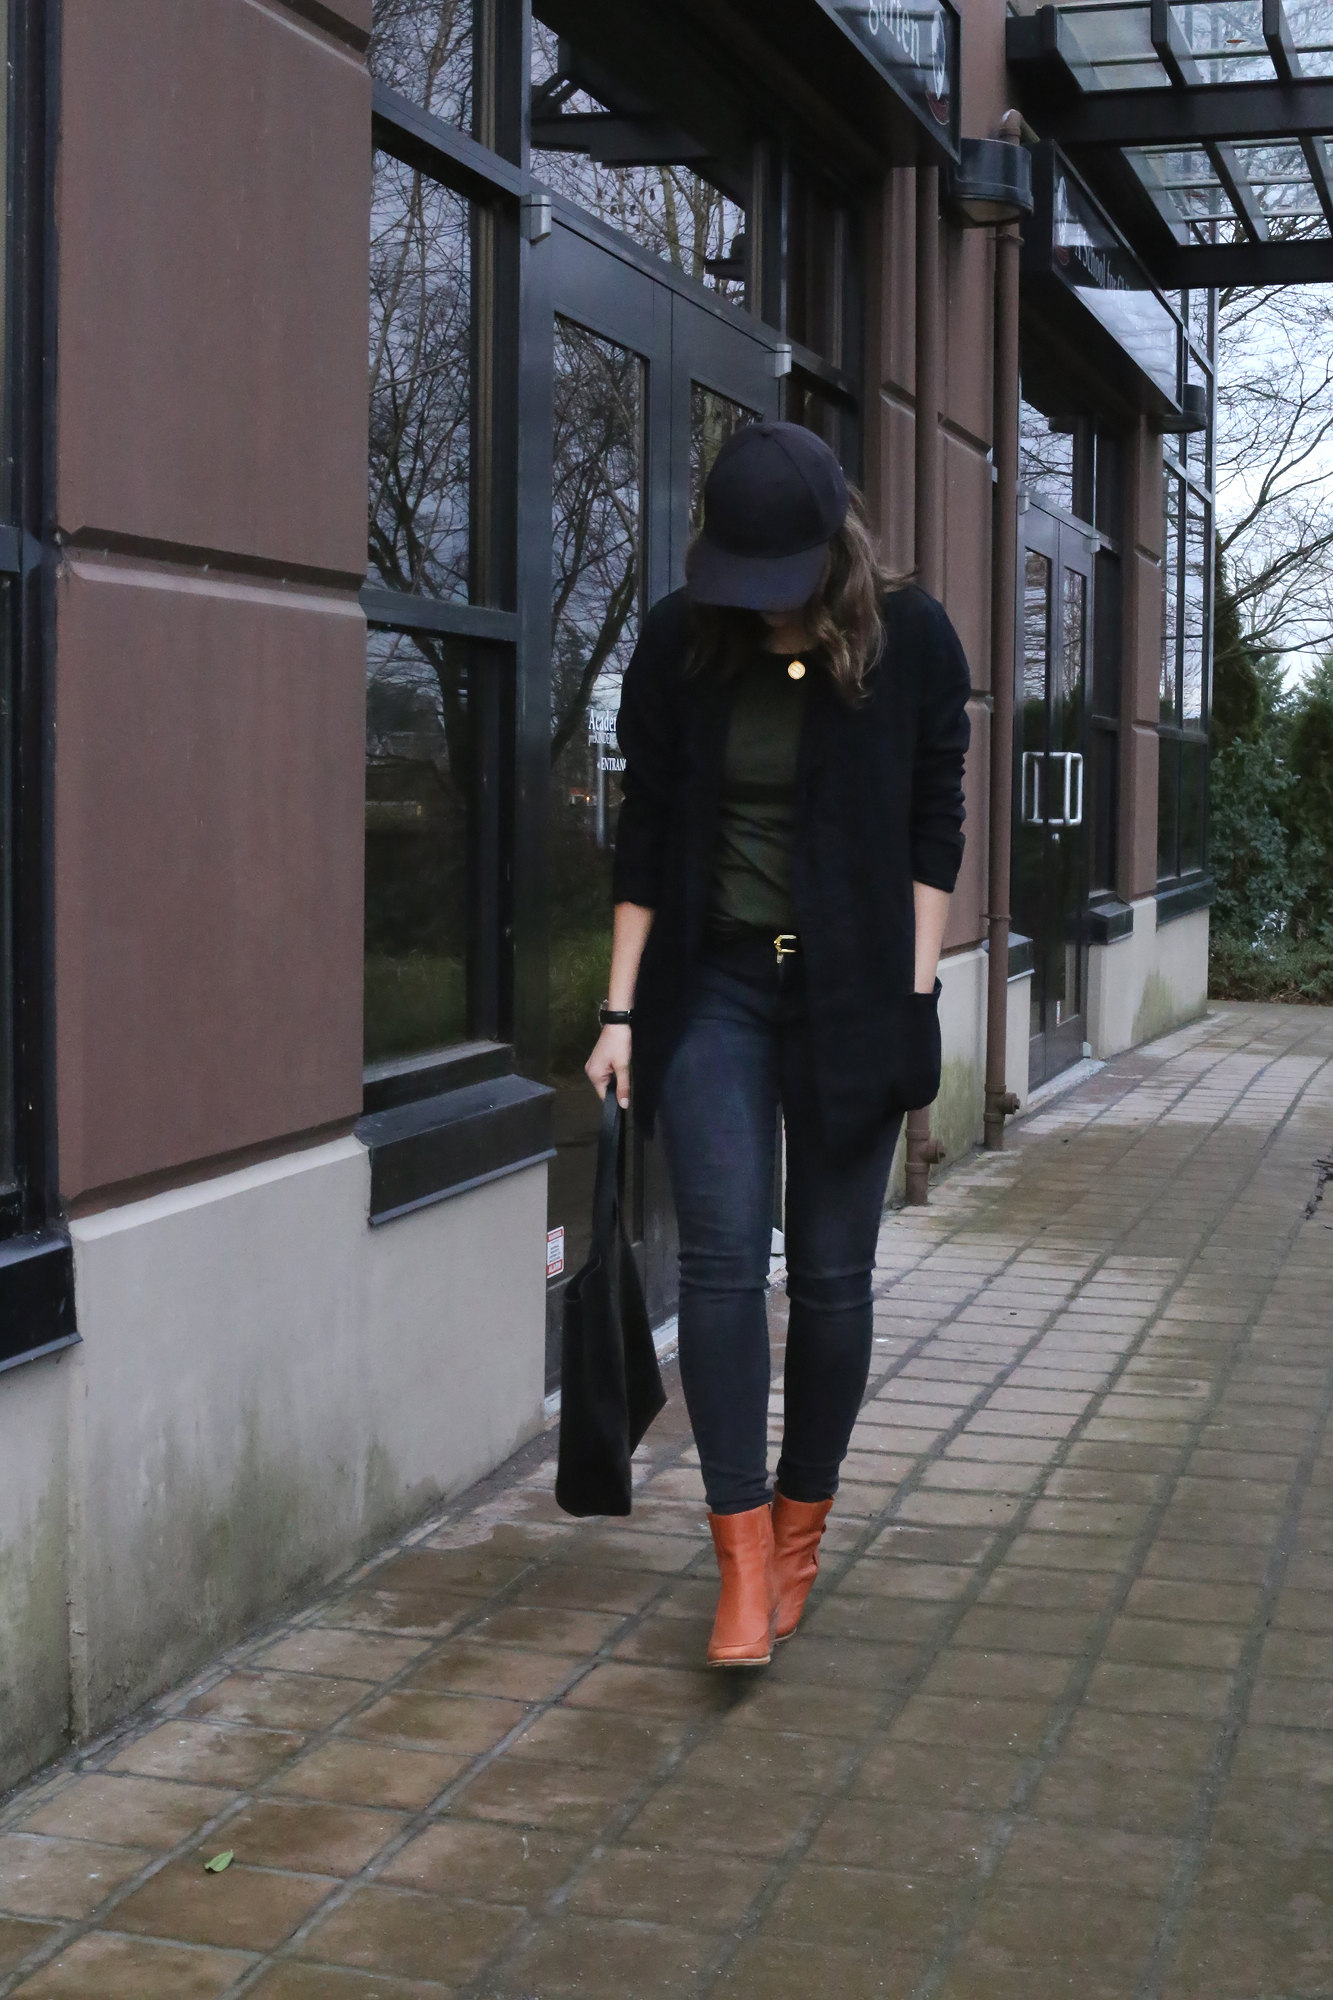 OMG this is pure street style outfit perfection. Love this minimalist outfit and black baseball cap.